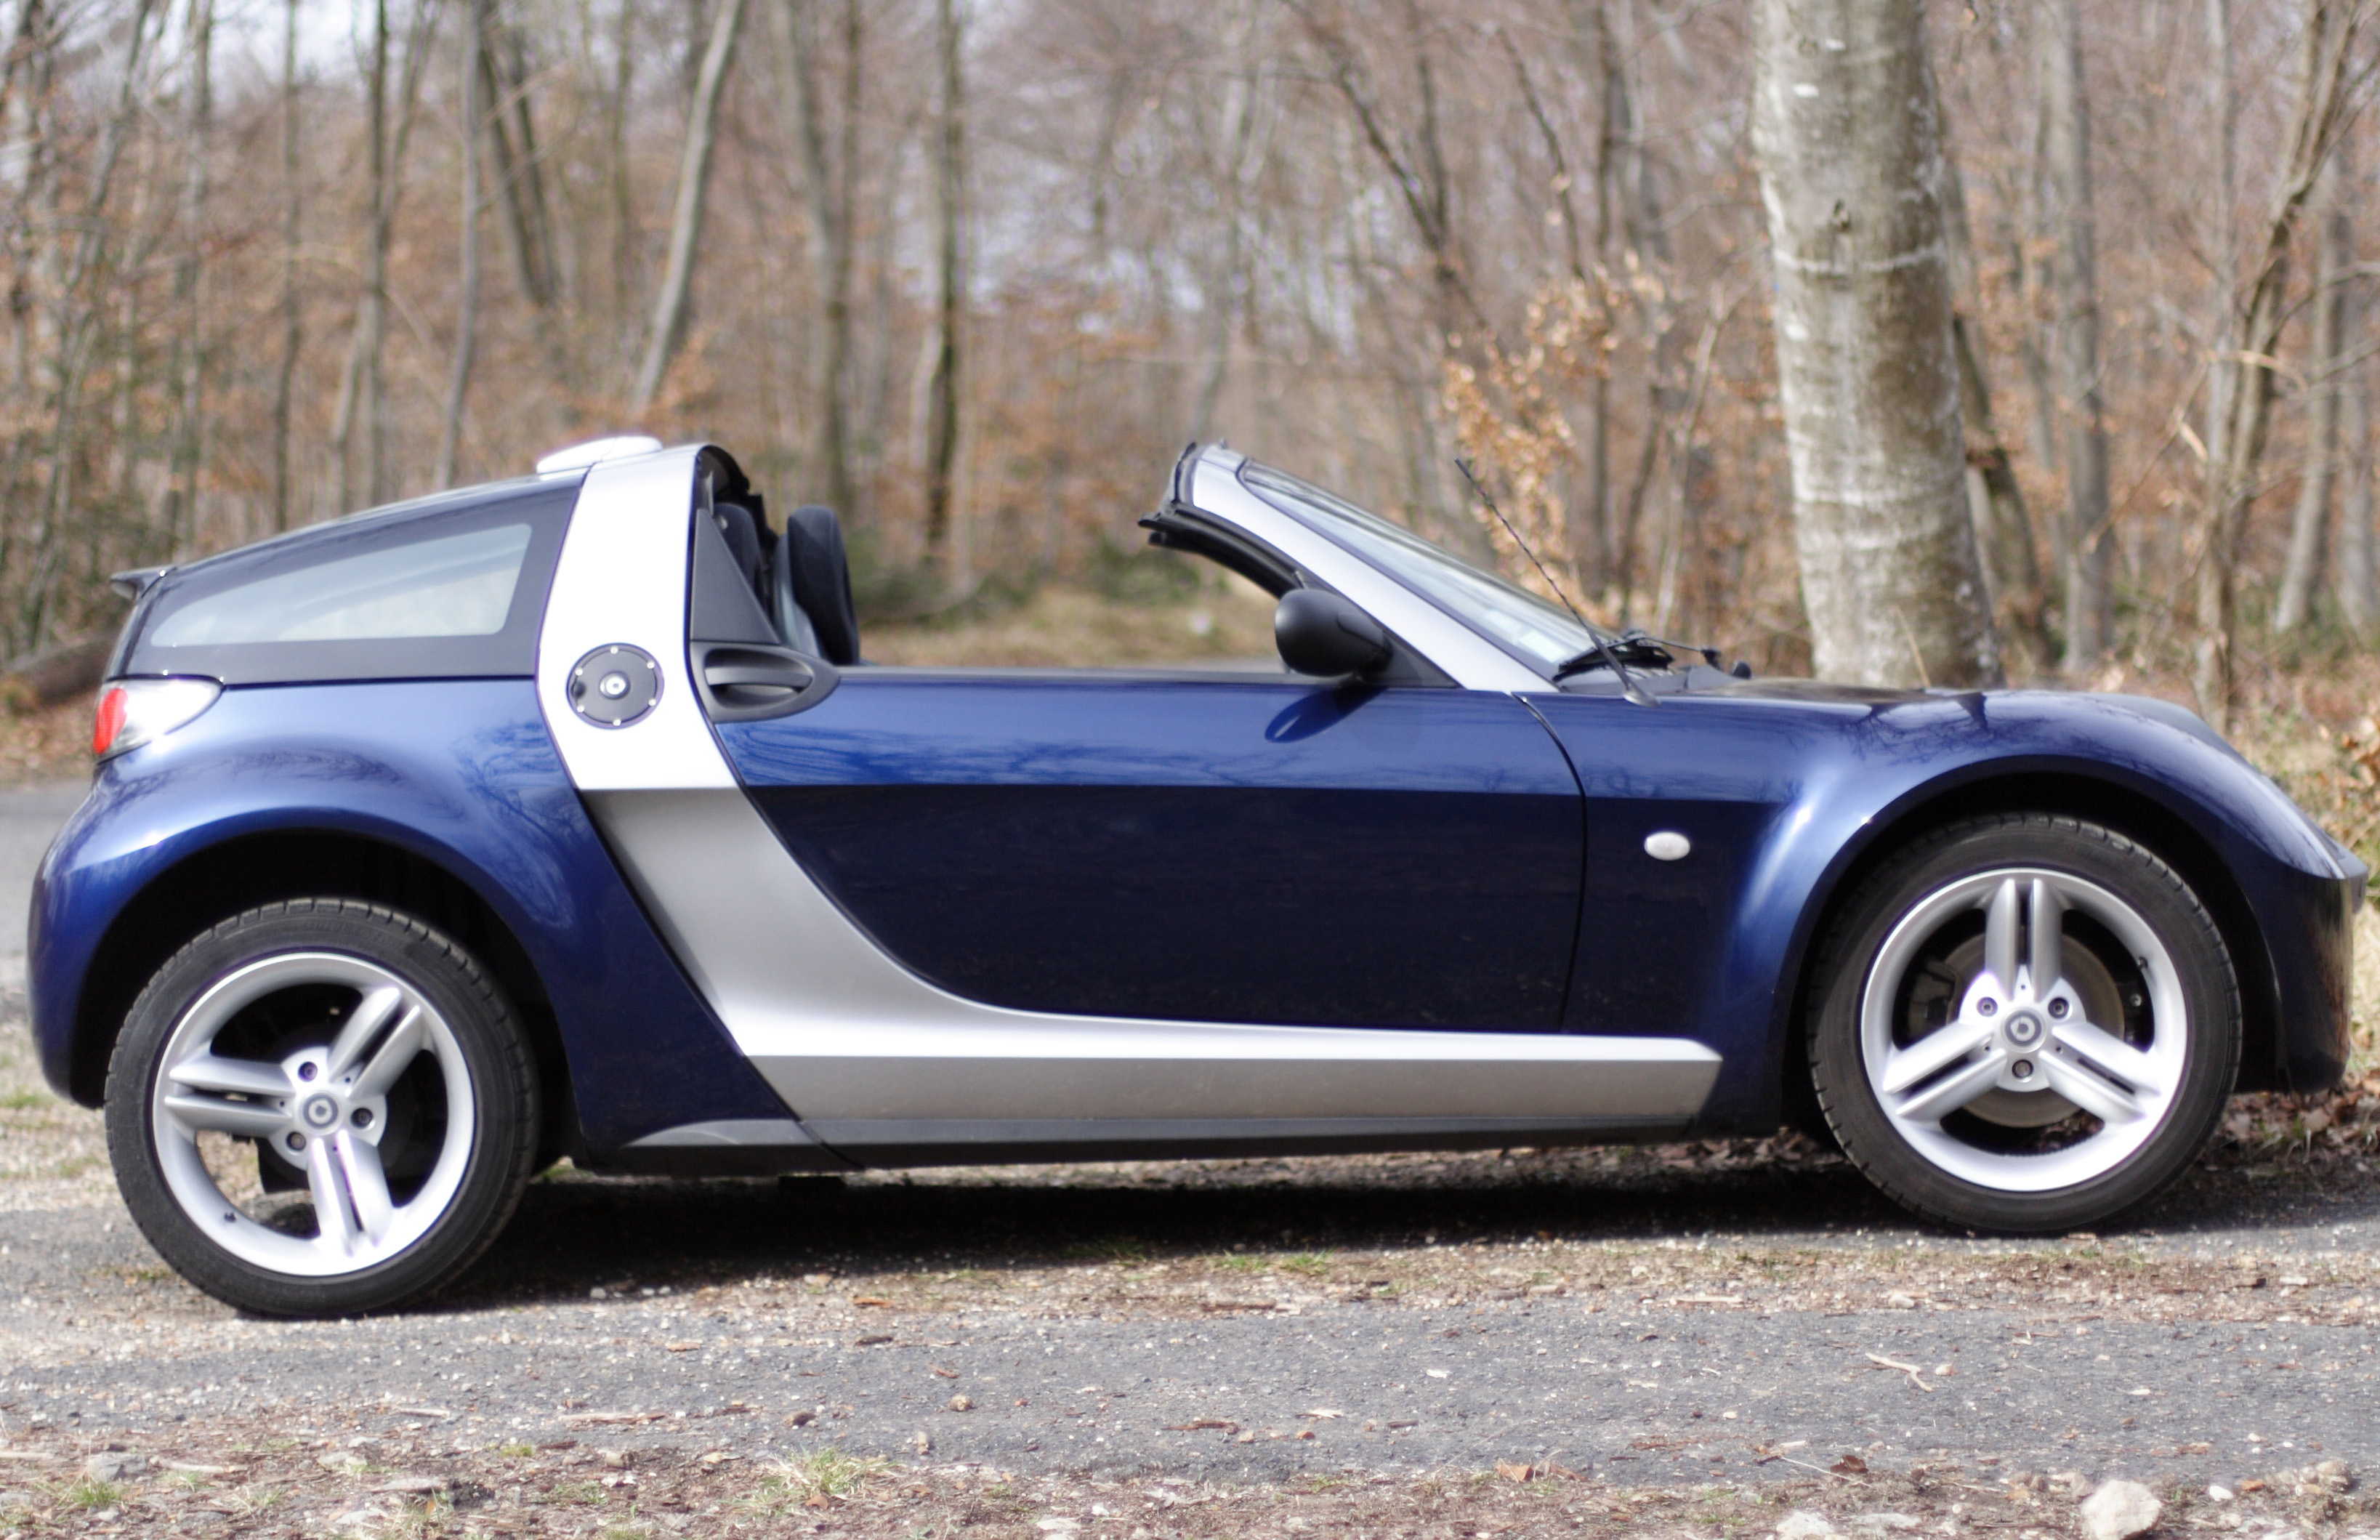 Honda S2000 Specs >> 2004 Smart Roadster – pictures, information and specs - Auto-Database.com